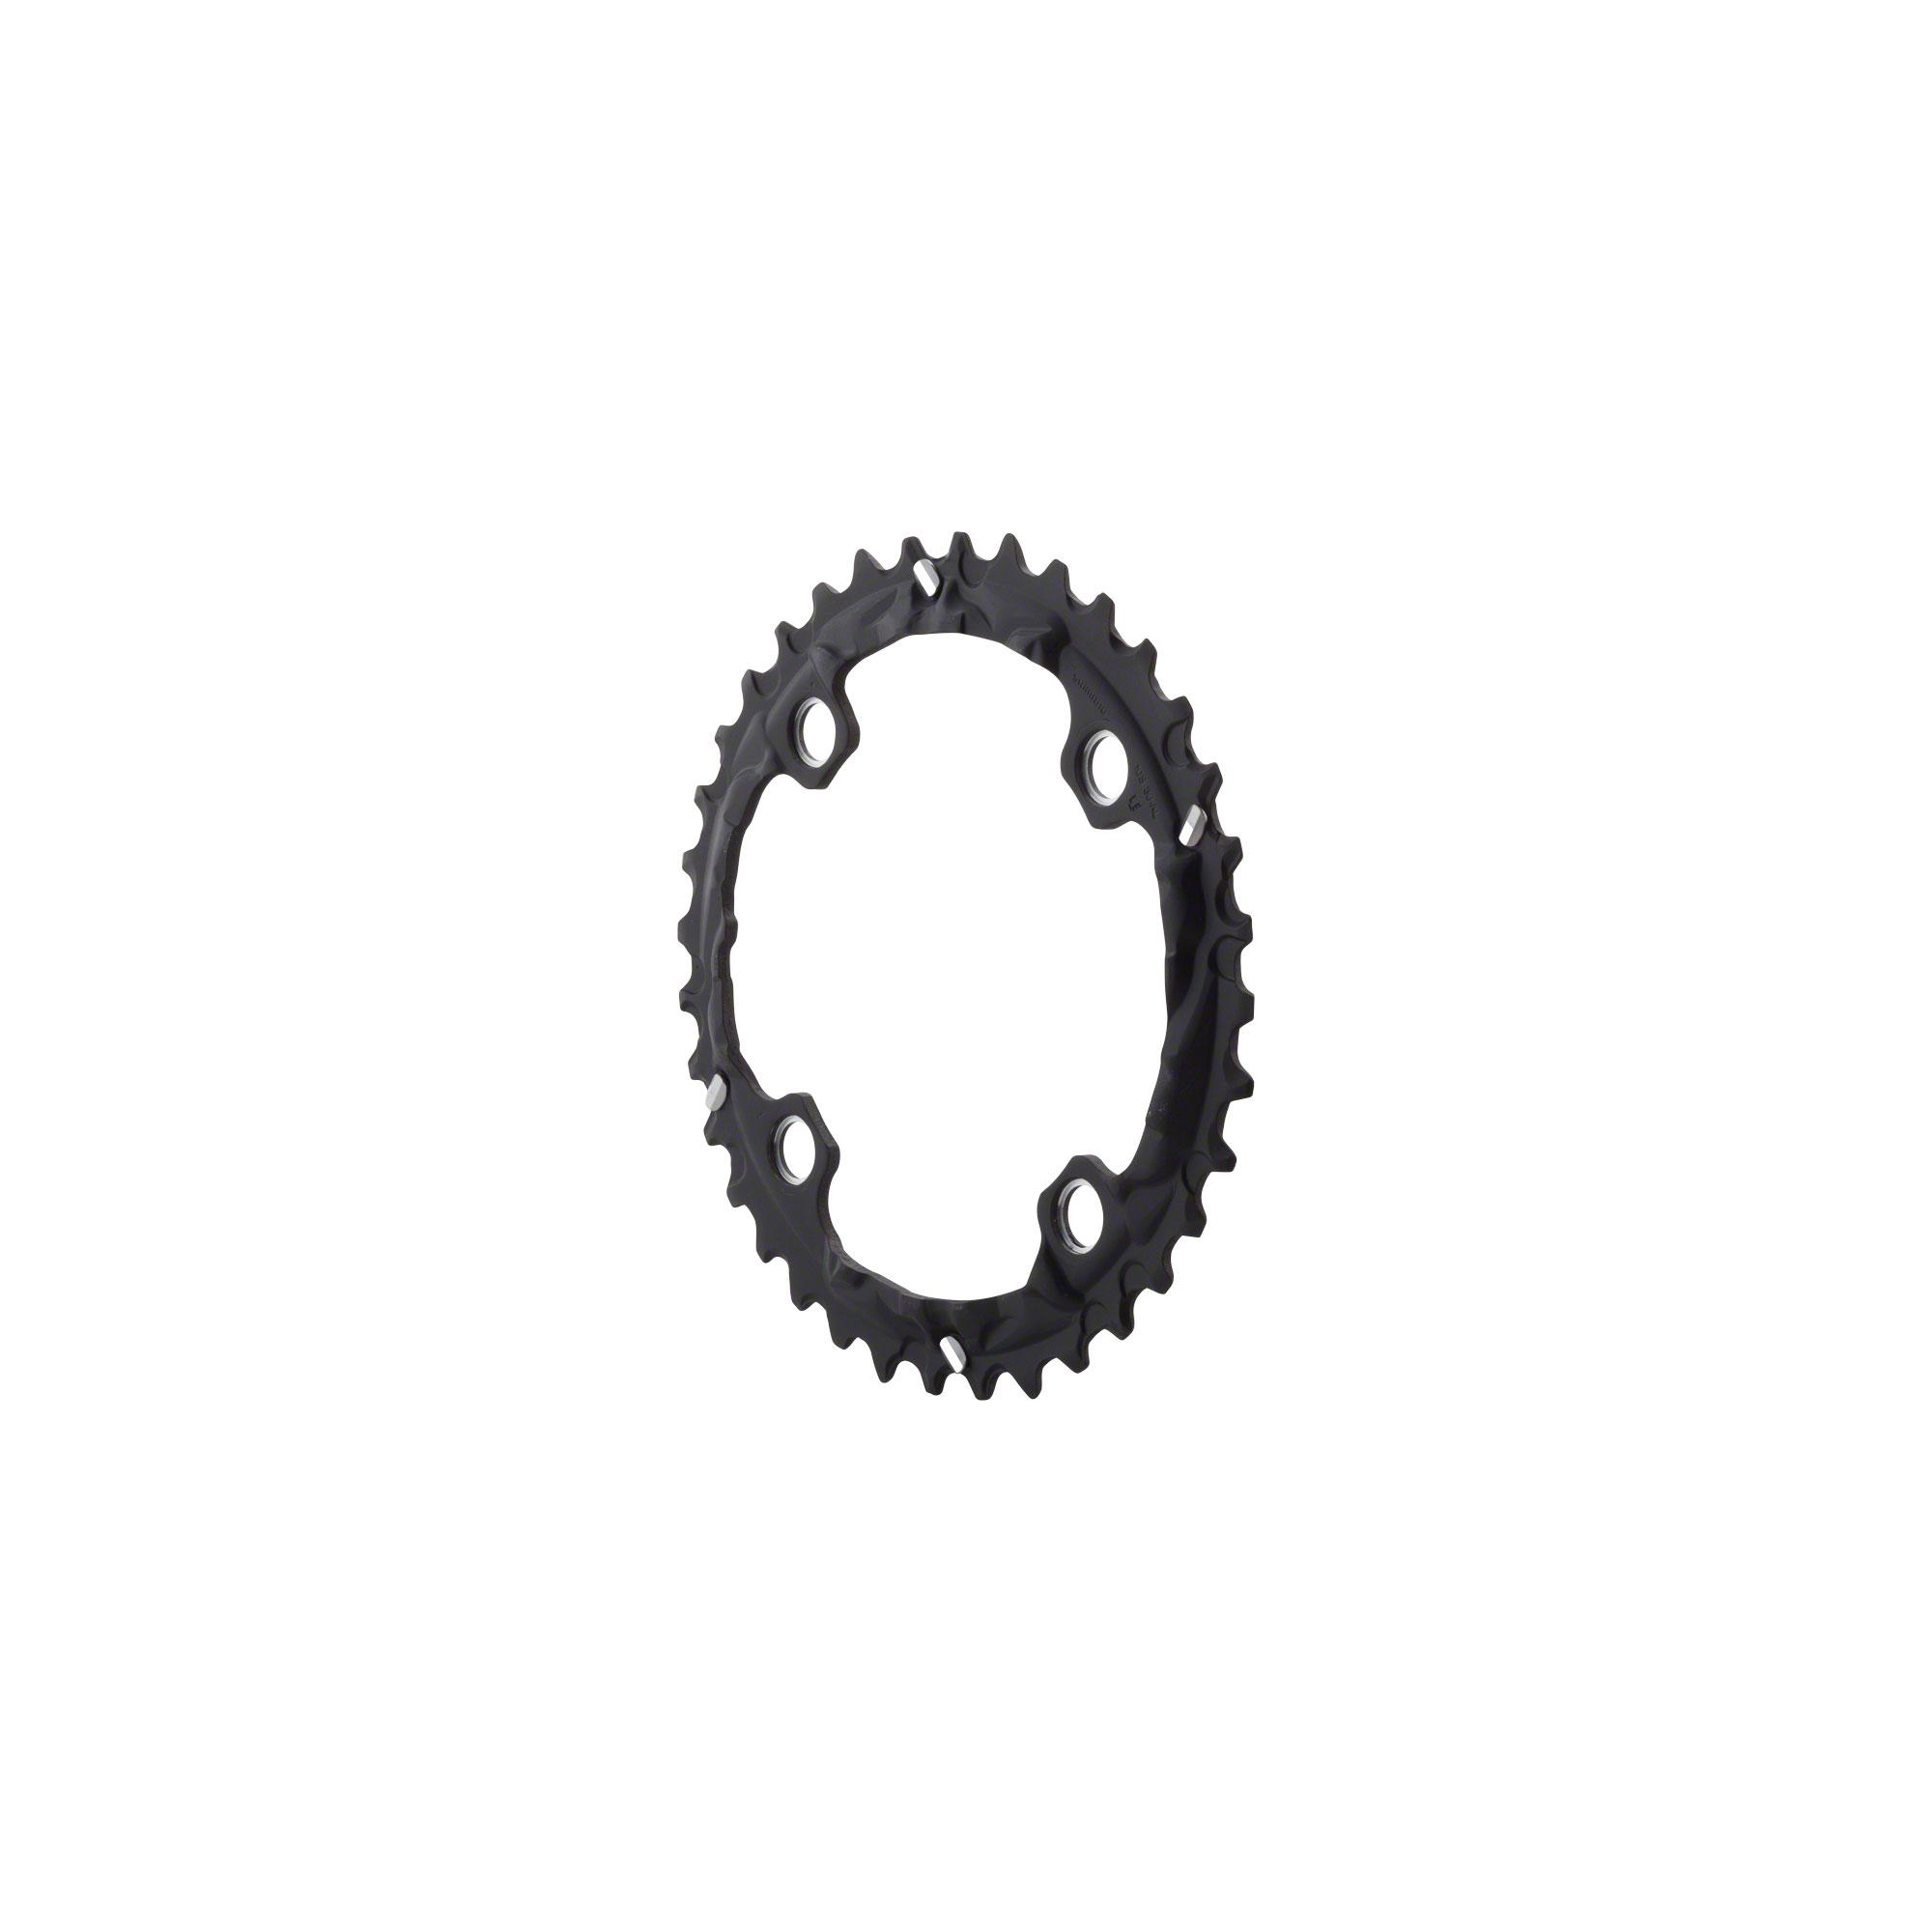 Details about Shimano Deore LX T671, XT T781 36t 104mm 10-Speed Middle  Chainring